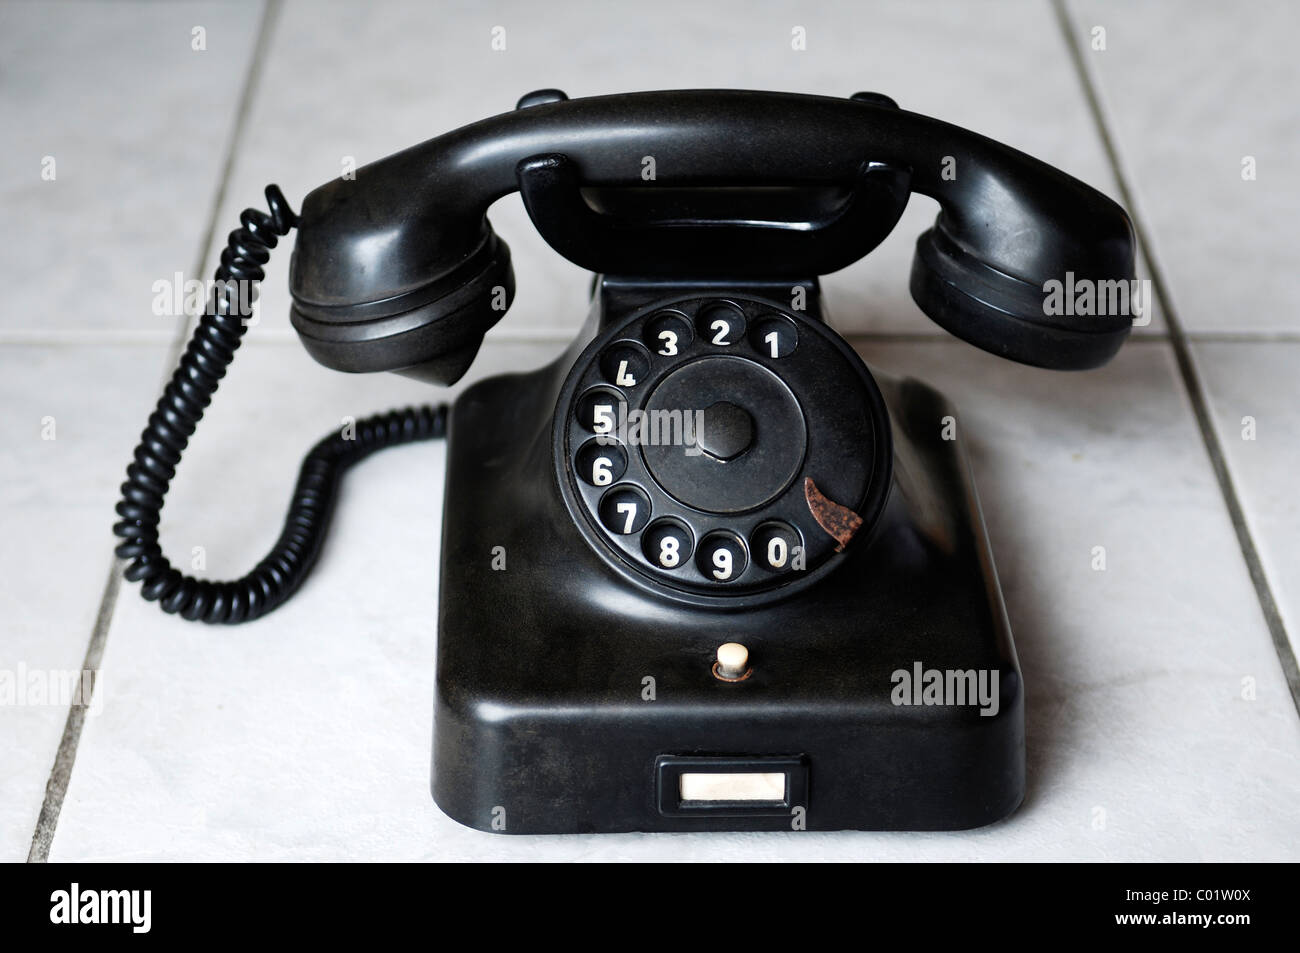 Old bakelite phone from 1940 - 1950 - Stock Image